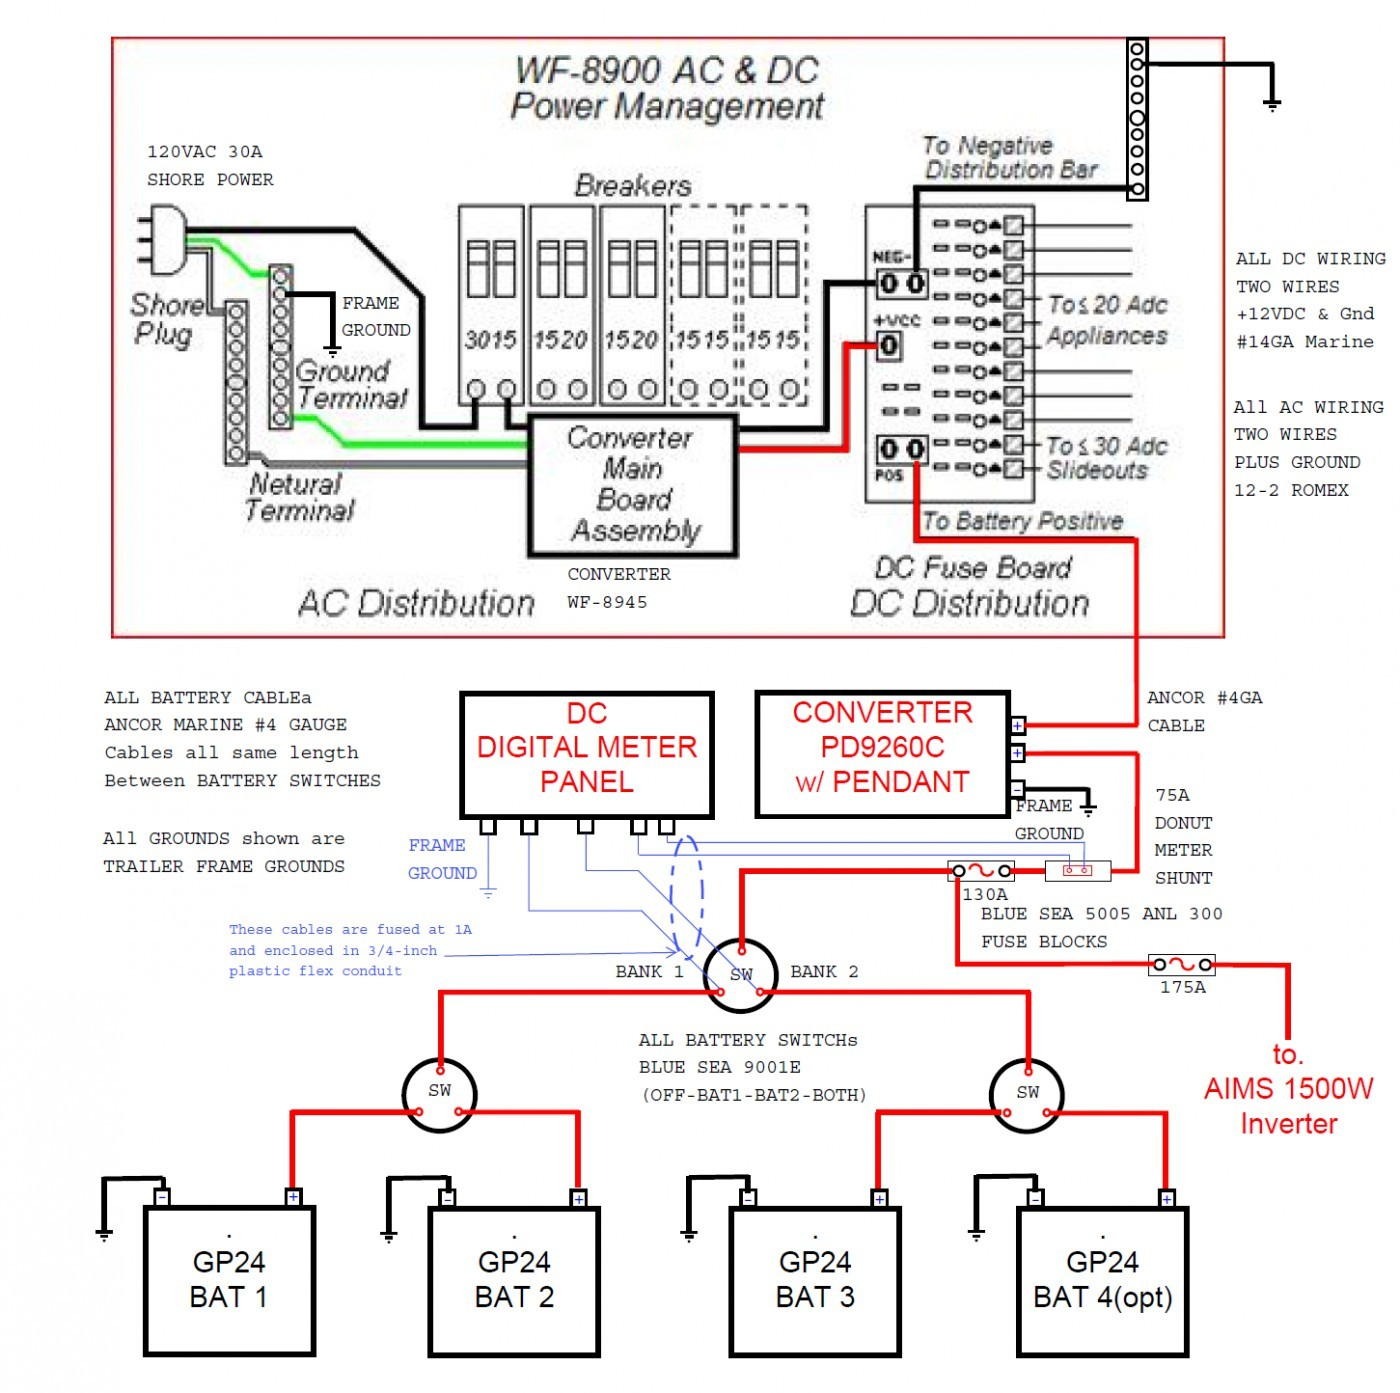 DIAGRAM] 1990 Coleman Pop Up Wiring Diagram FULL Version HD Quality Wiring  Diagram - VIRTUALWIRINGCLOSET.LITTLETEO.FRDiagram Database - LITTLETEO